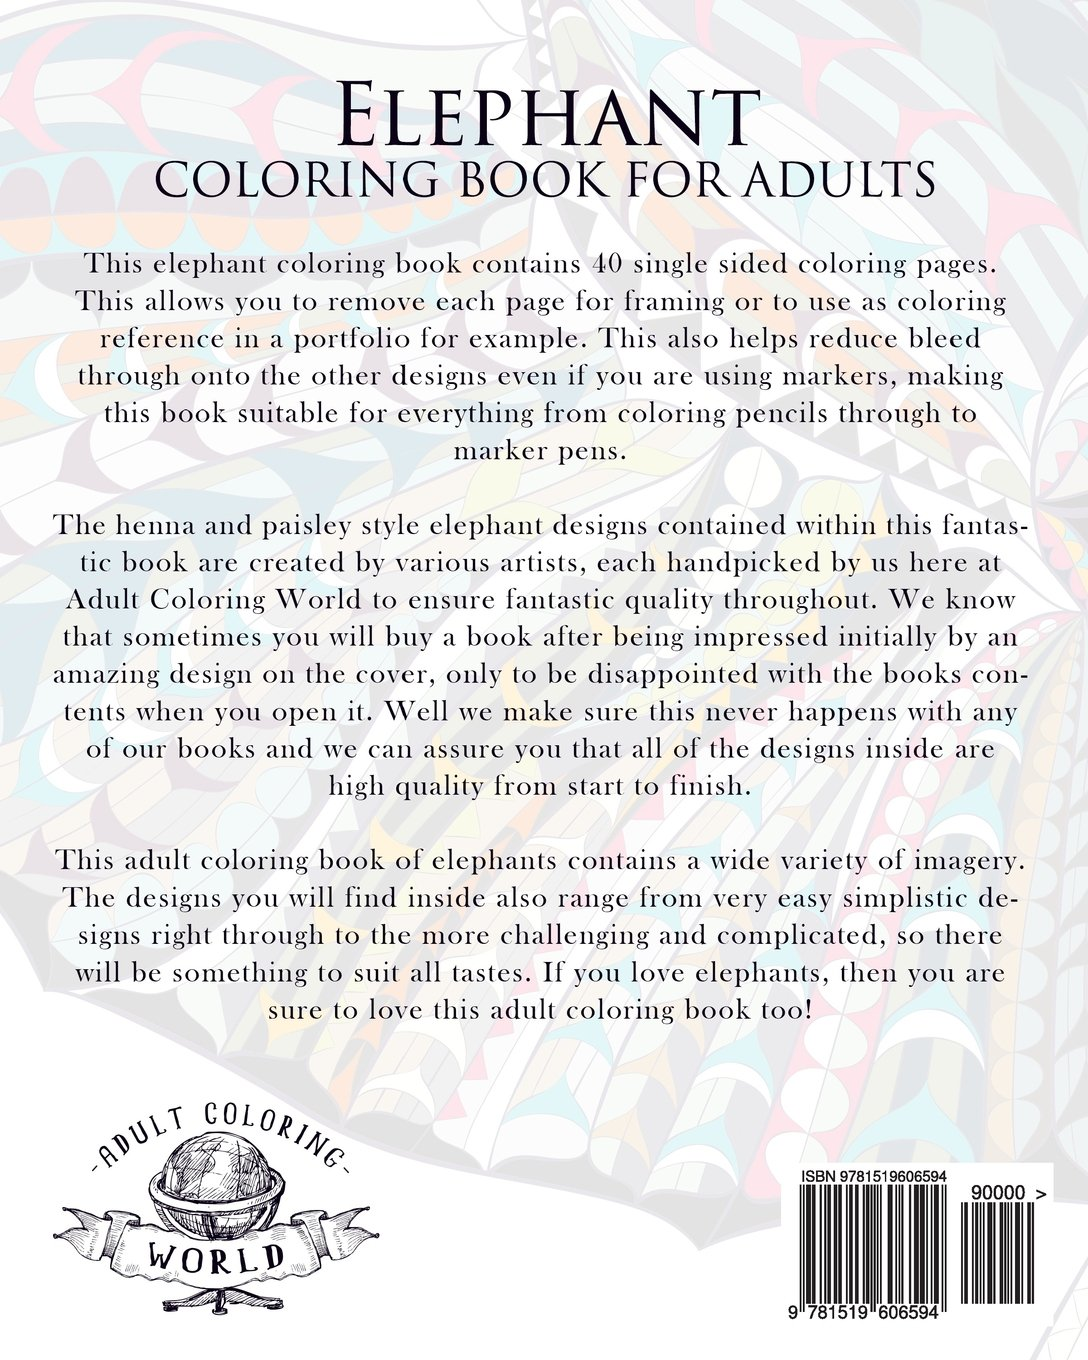 Coloring book pages of elephants - Amazon Com Elephant Coloring Book For Adults An Adult Coloring Book Of 40 Patterned Henna And Paisley Style Elephant Animal Coloring Books For Adults